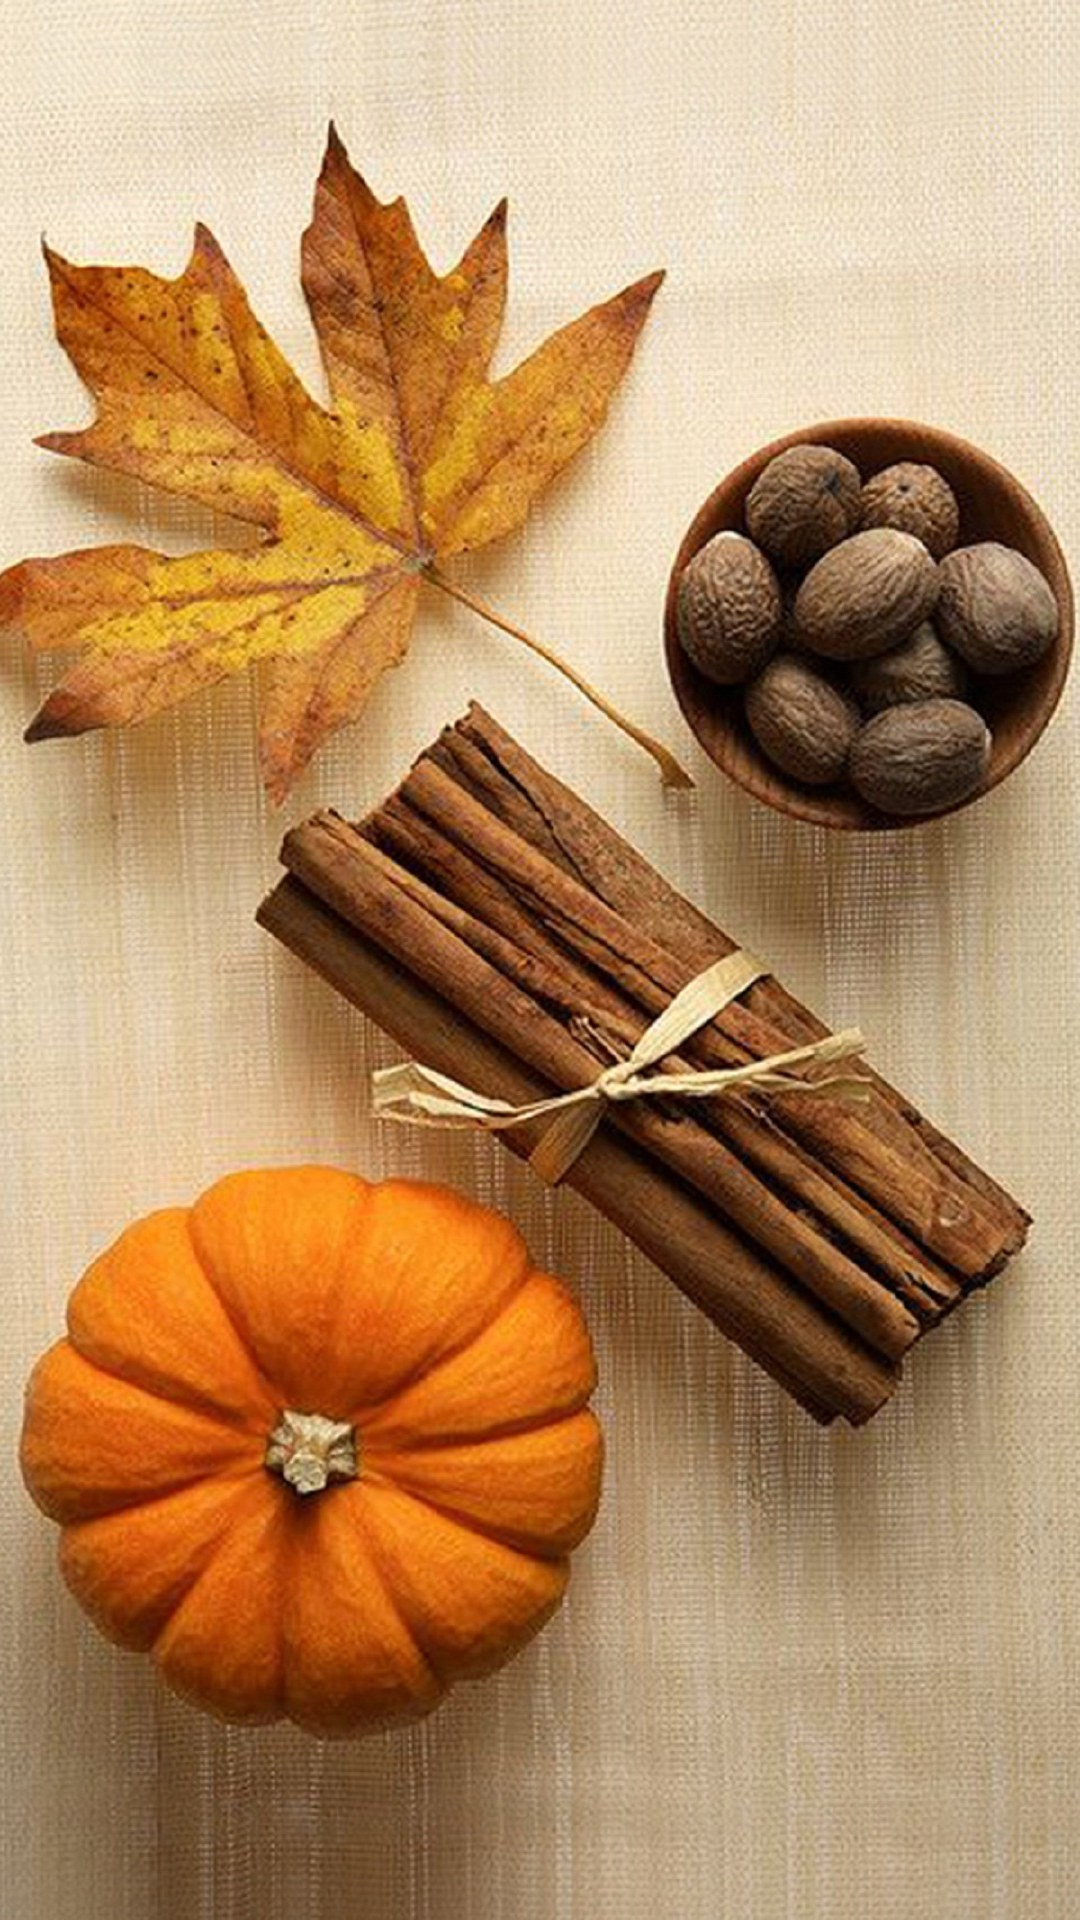 Pumpkin & Spices – Tap to see more of the top colorful Autumn wallpapers!